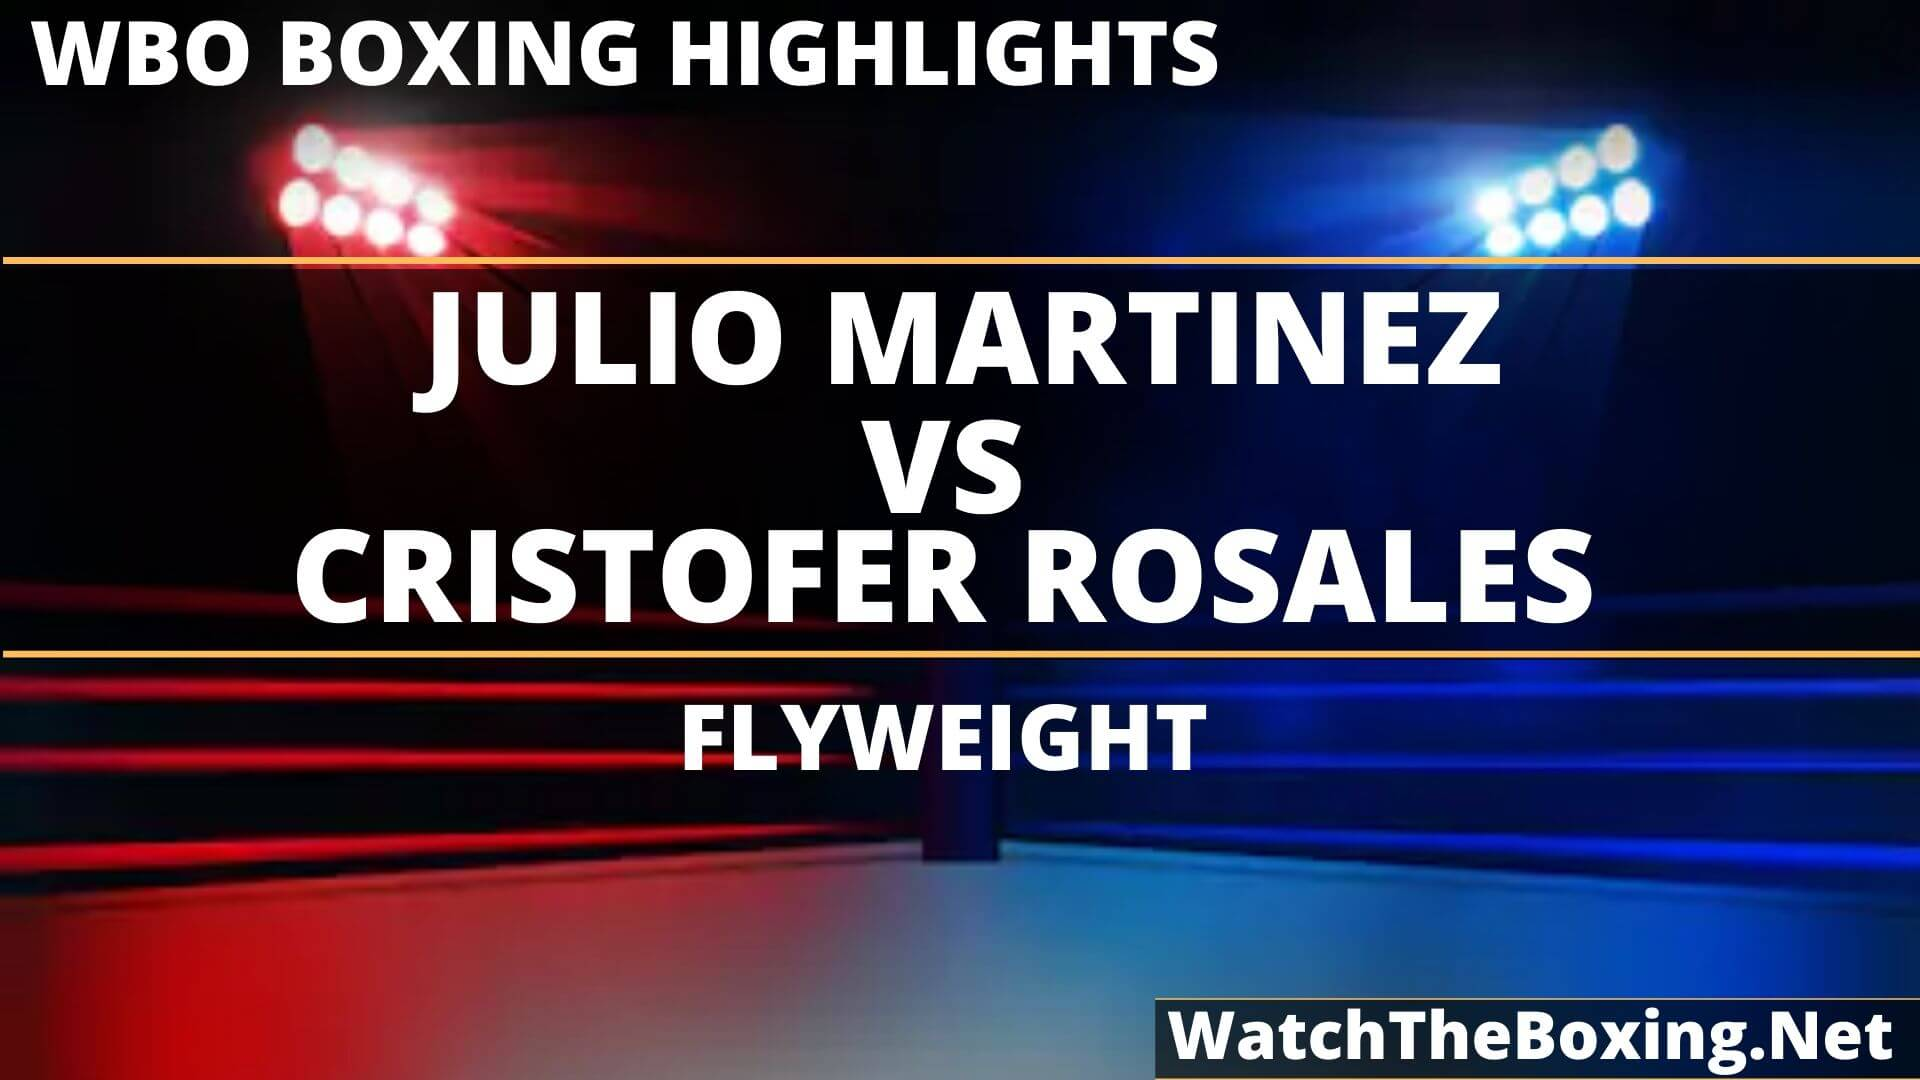 Julio Martinez Vs Cristofer Rosales Highlights 2019